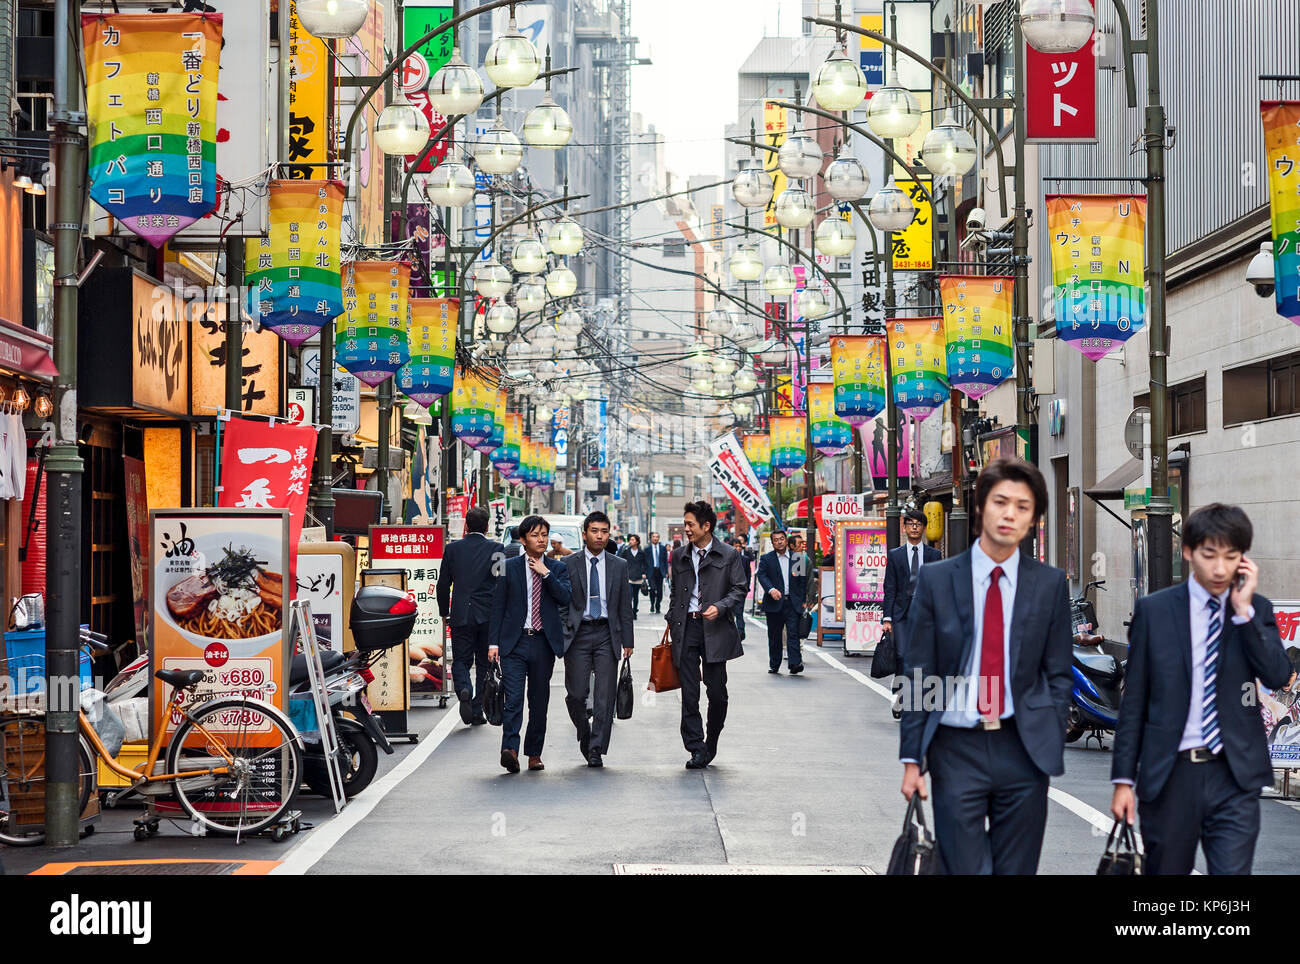 Salaryman Shinbashi Photo Stock